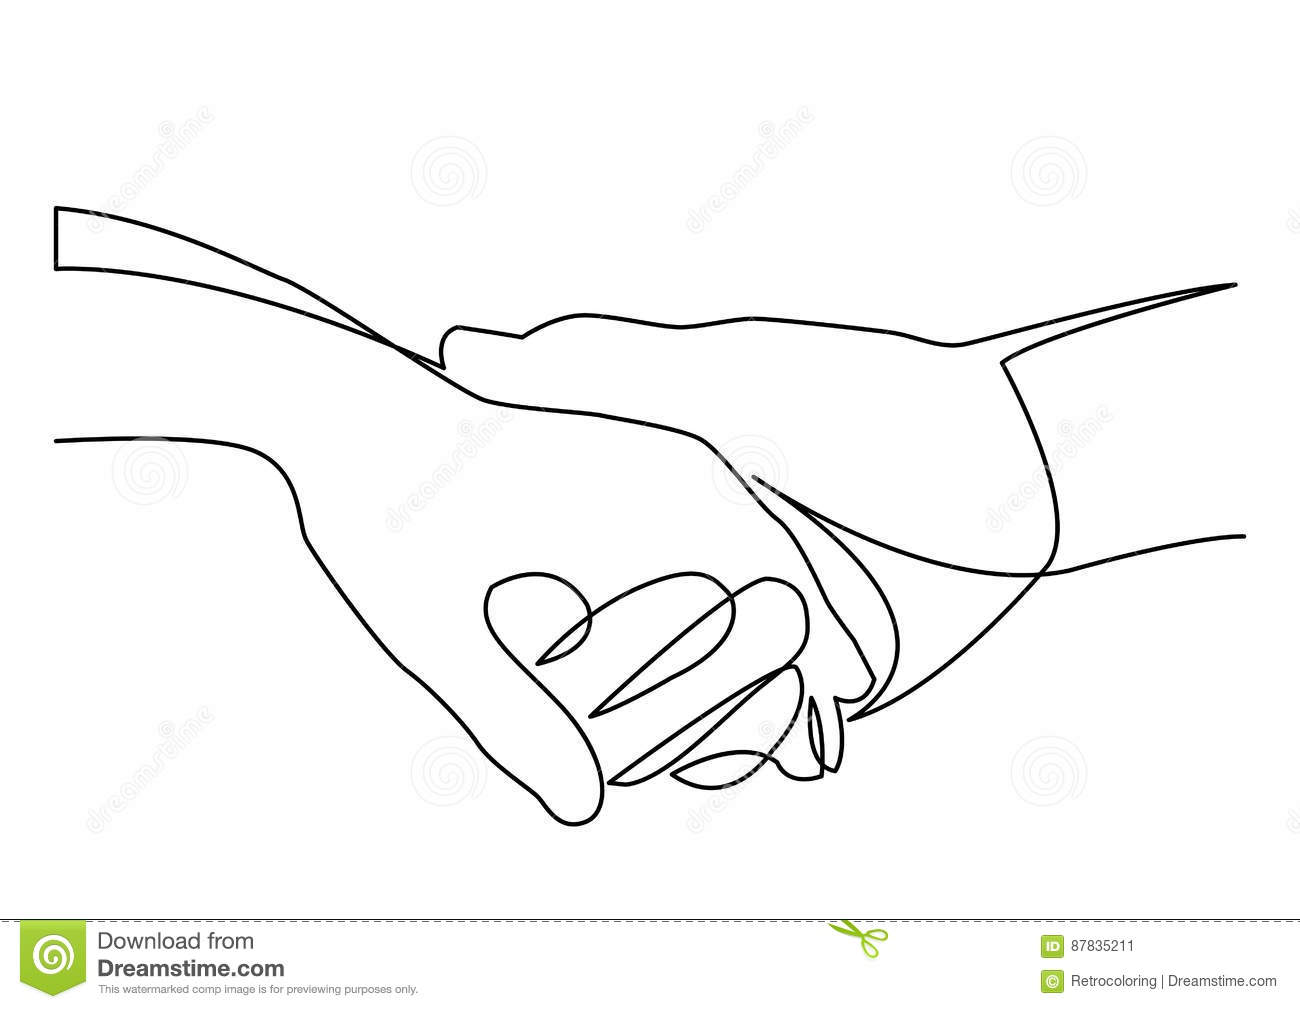 Simple Vector Line Art : Continuous line drawing of holding hands together stock